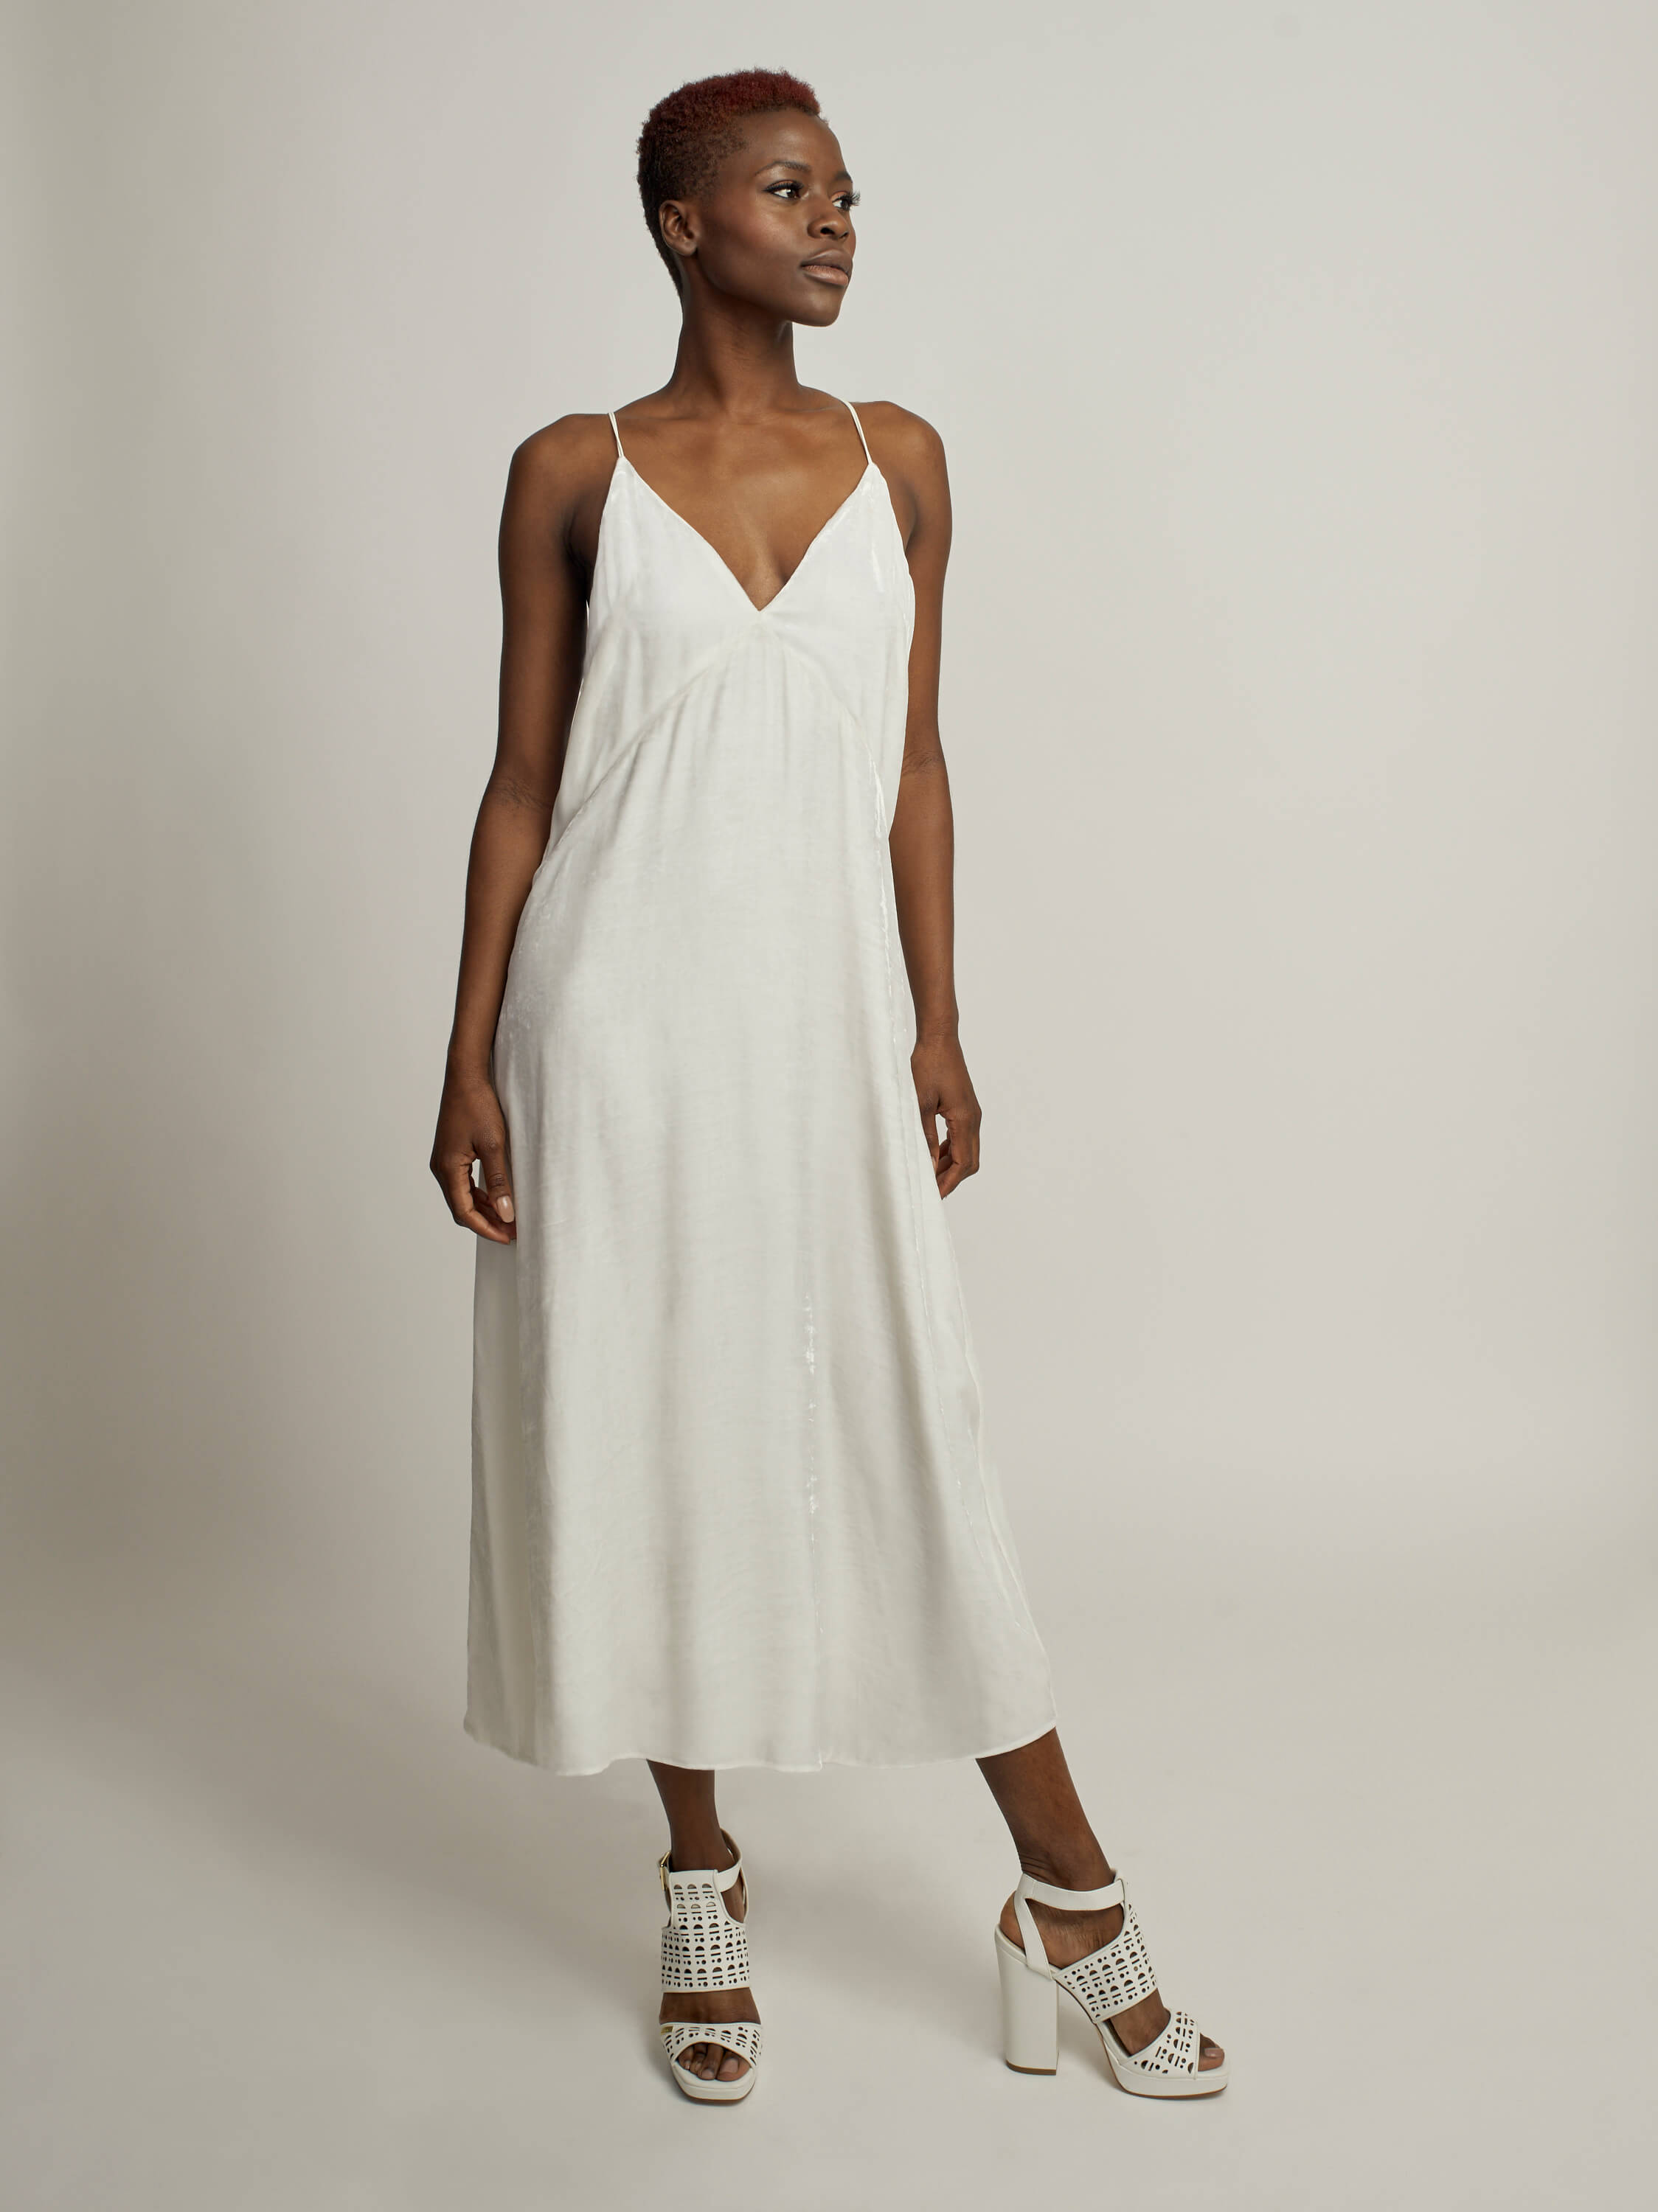 Amoré Dress, Ivory - Jody Tjan